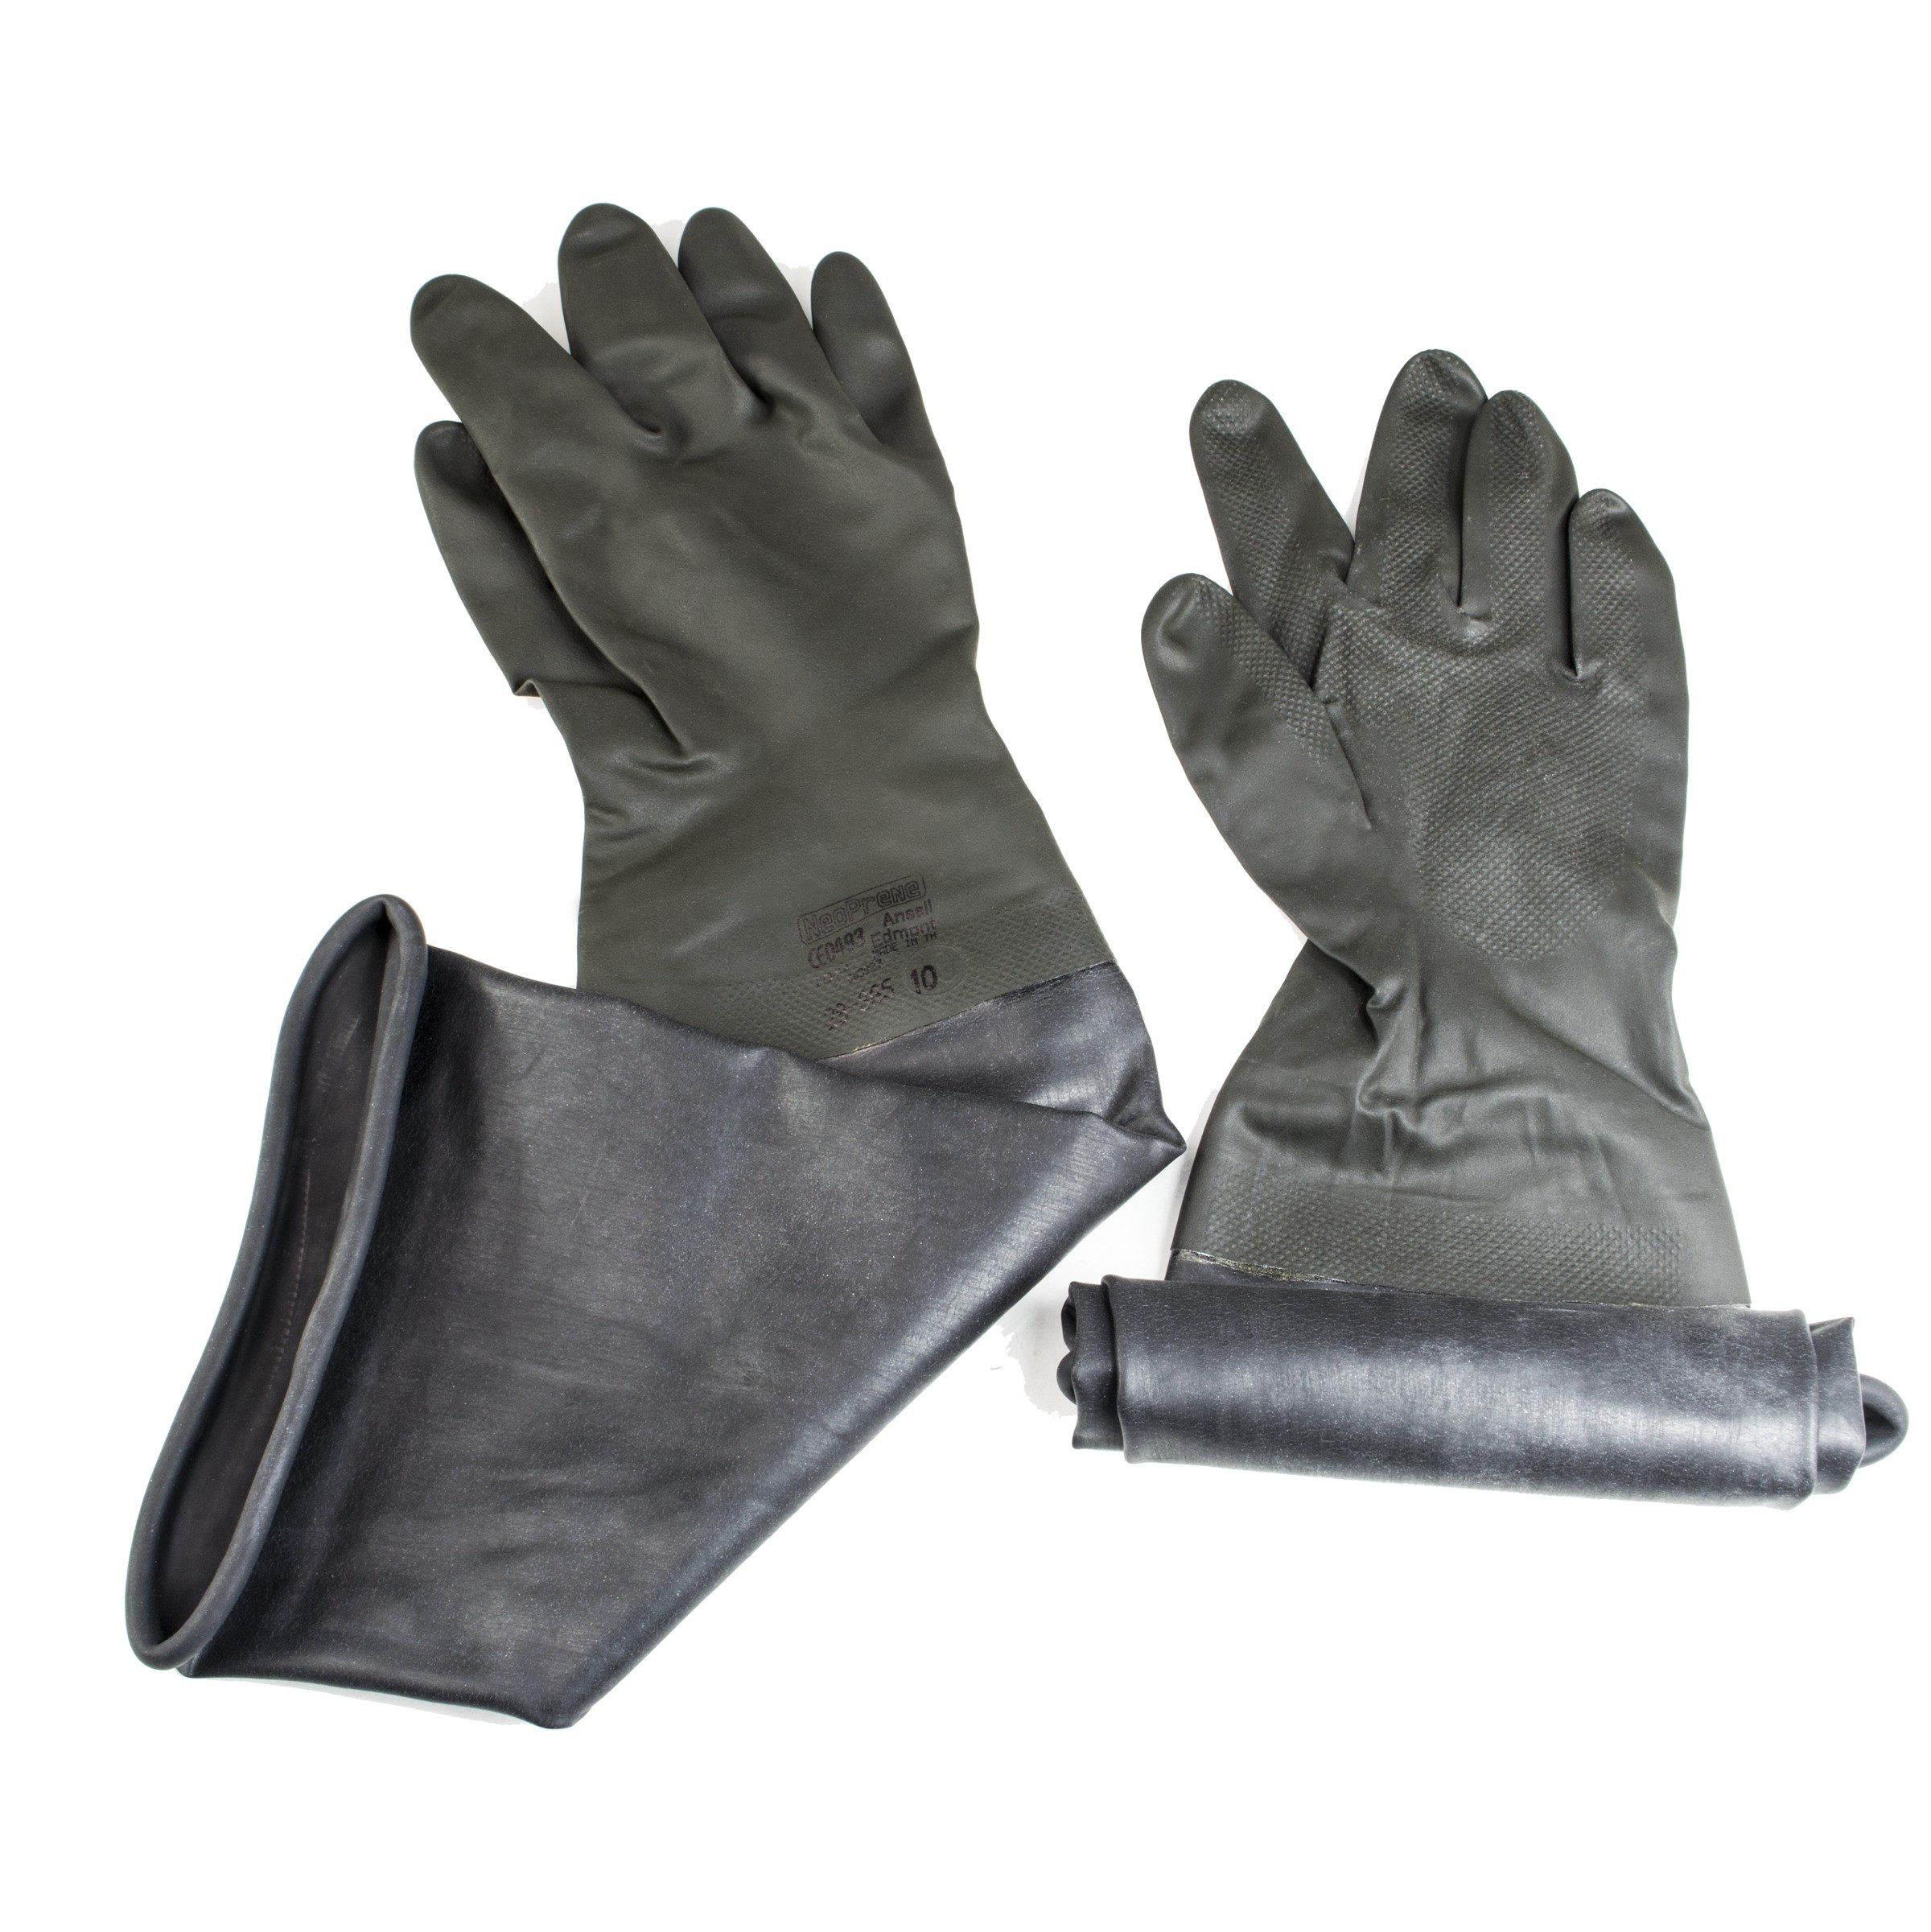 SP Bel-Art Glove Box Economy Sleeved Size 8 Gloves; For 6 in. Glove Ports